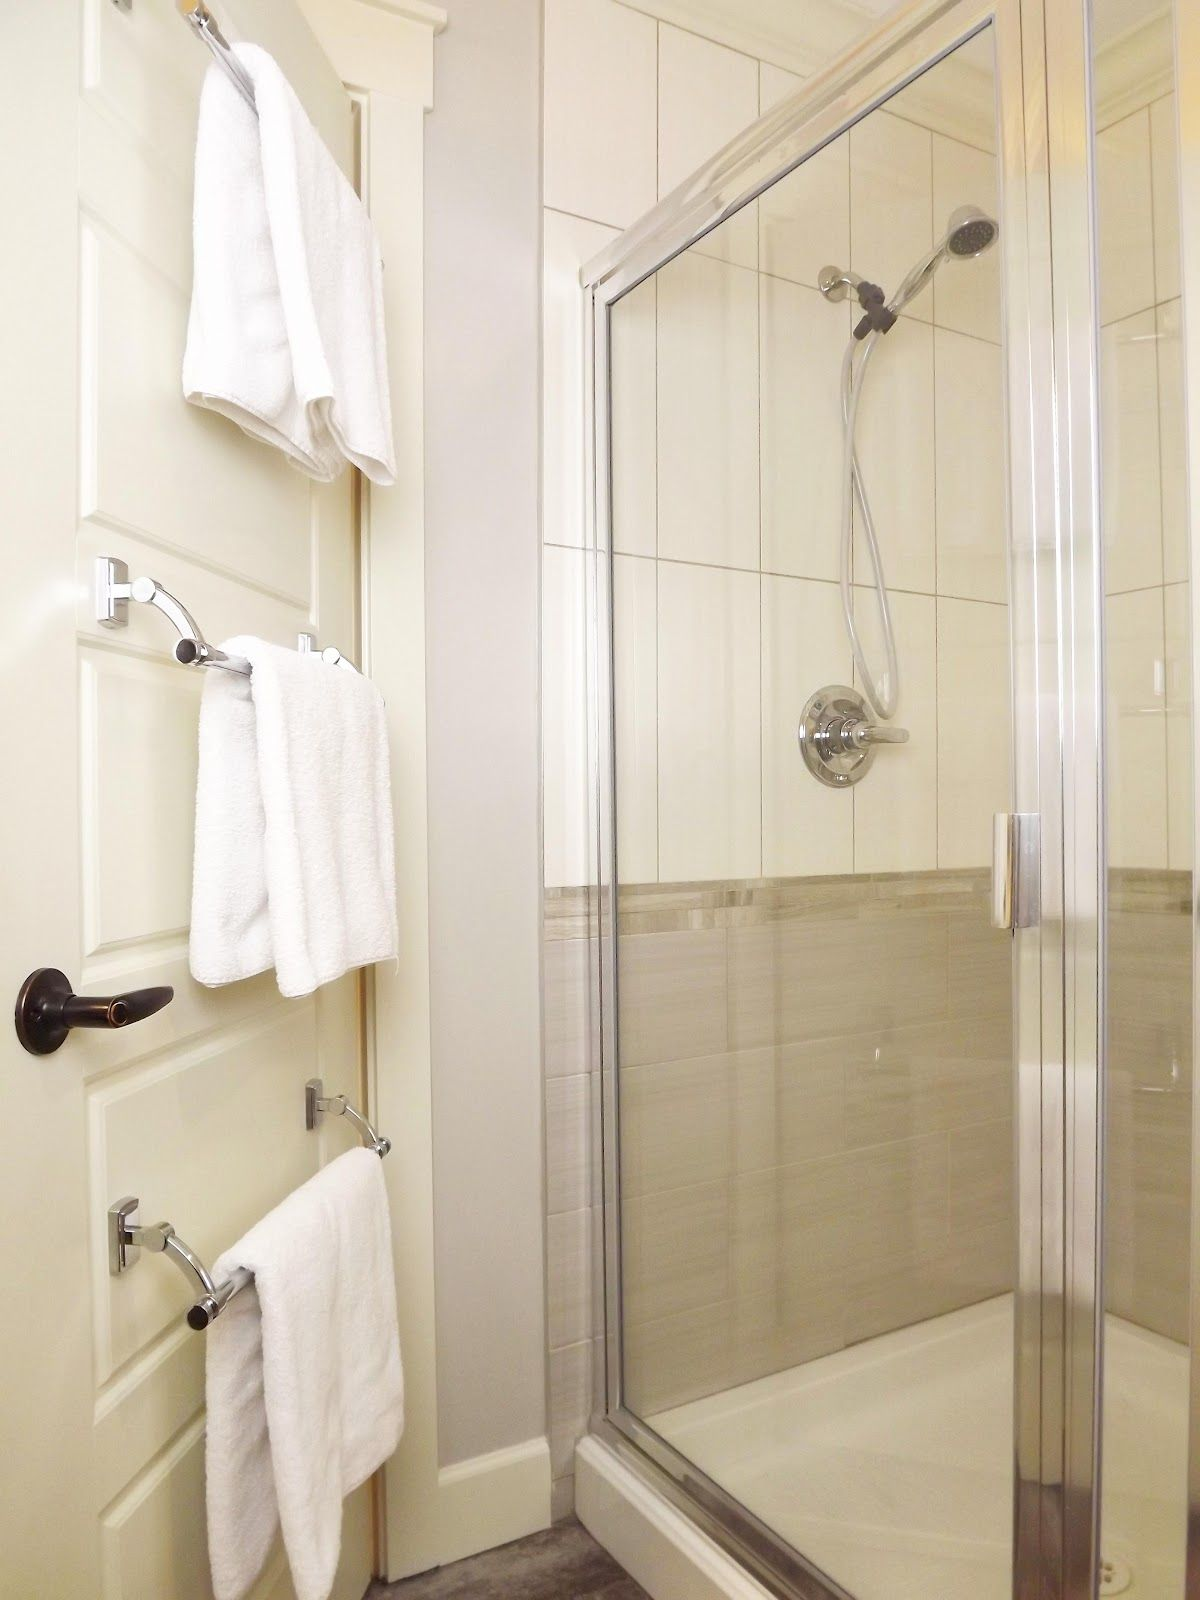 If You Have A Solid Wood Door You Can Put More Than One Towel Bar - Towel holders for small bathrooms for small bathroom ideas